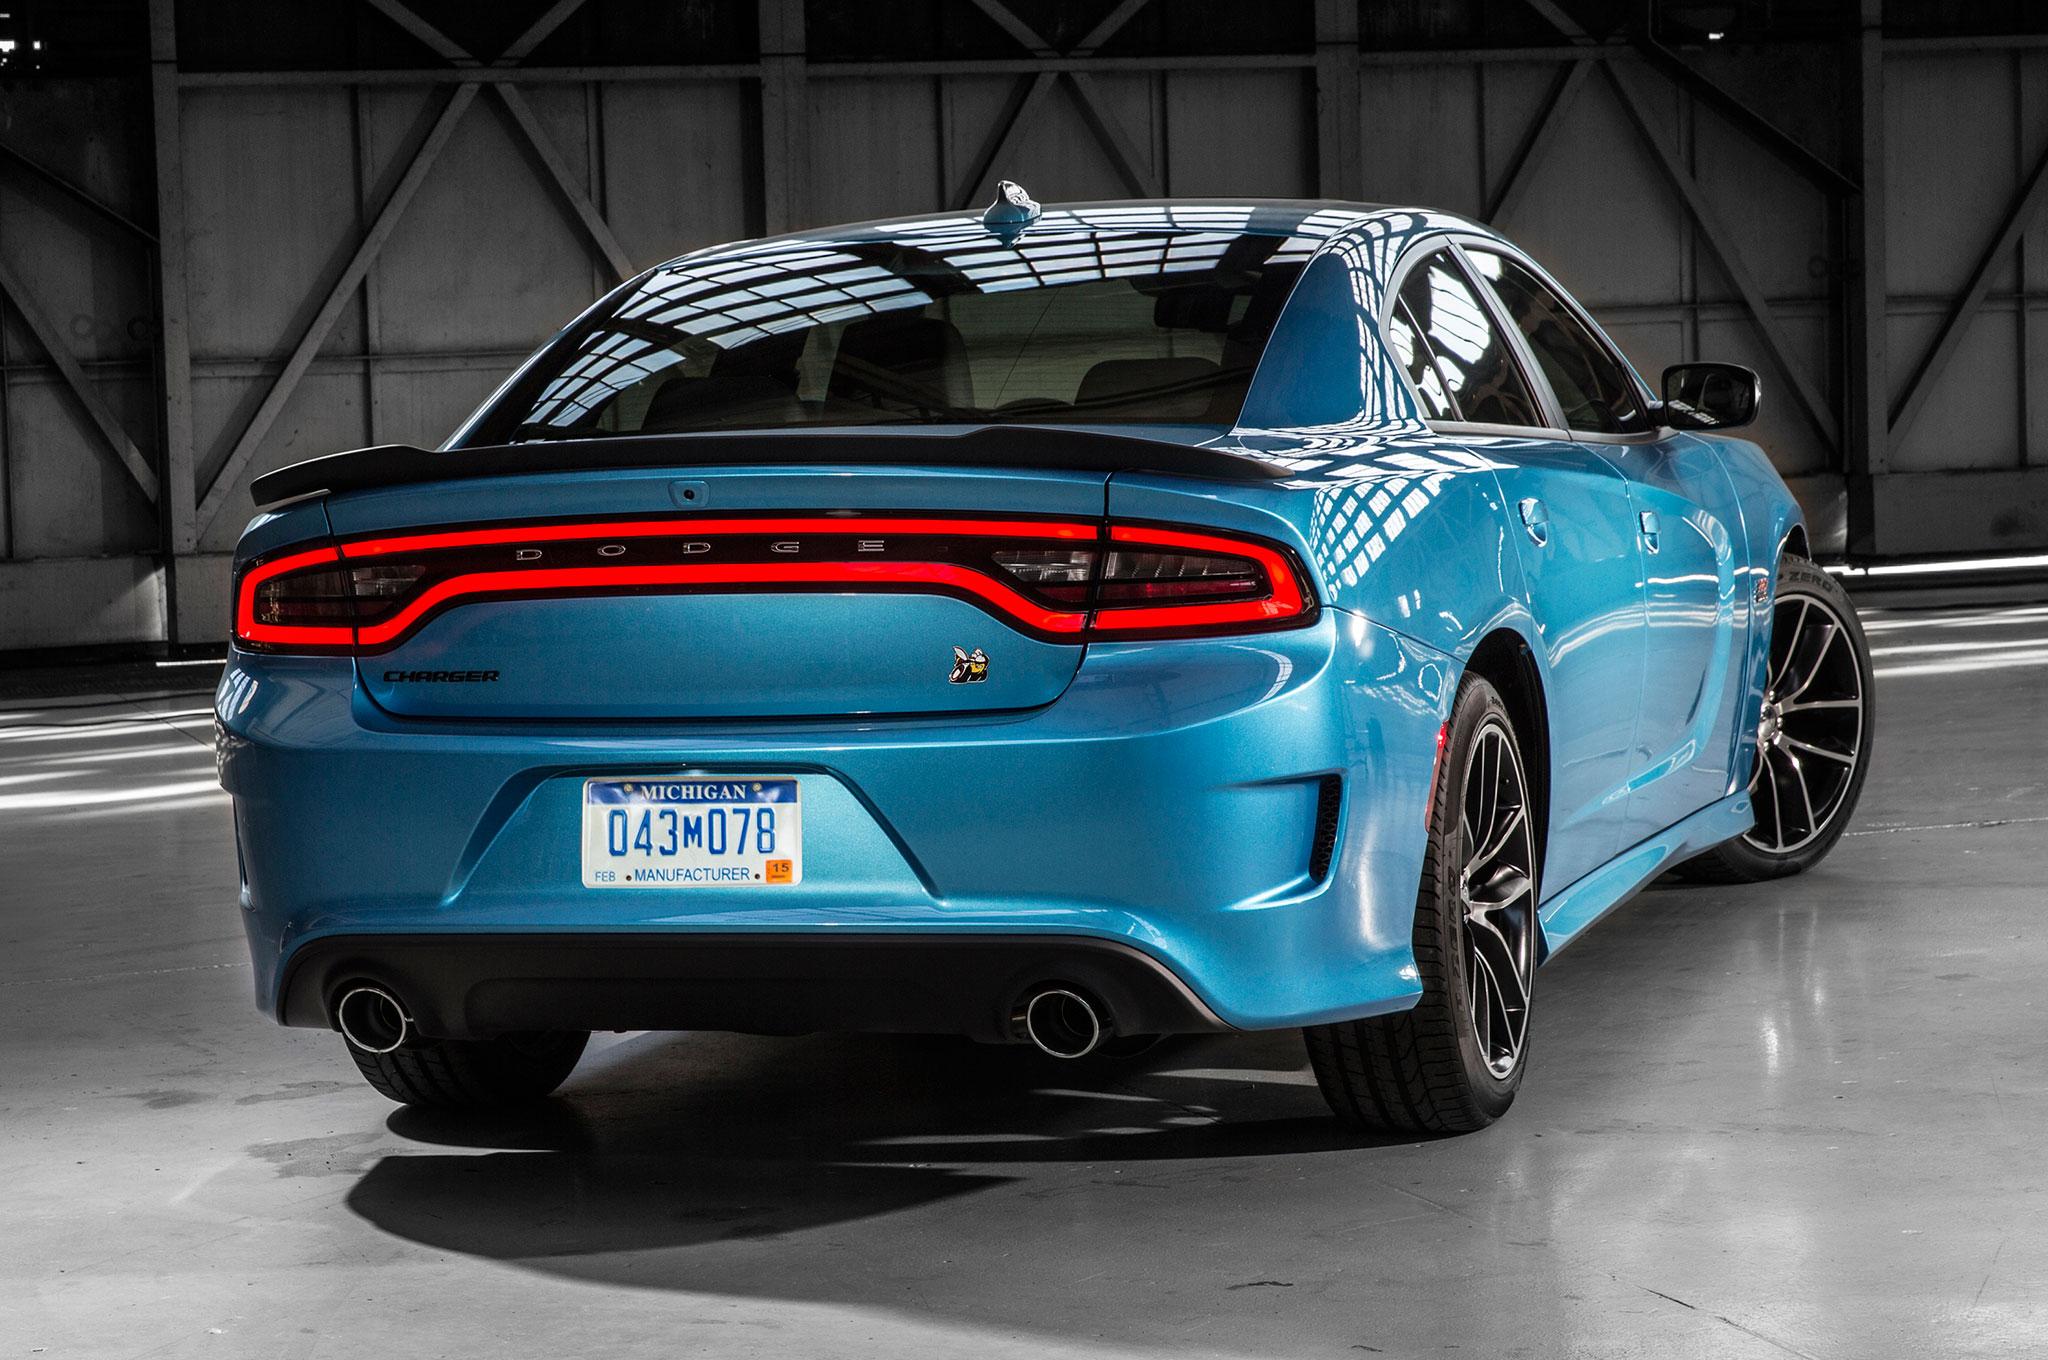 2017 Dodge Charger Rt Pack Rear Three Quarter View